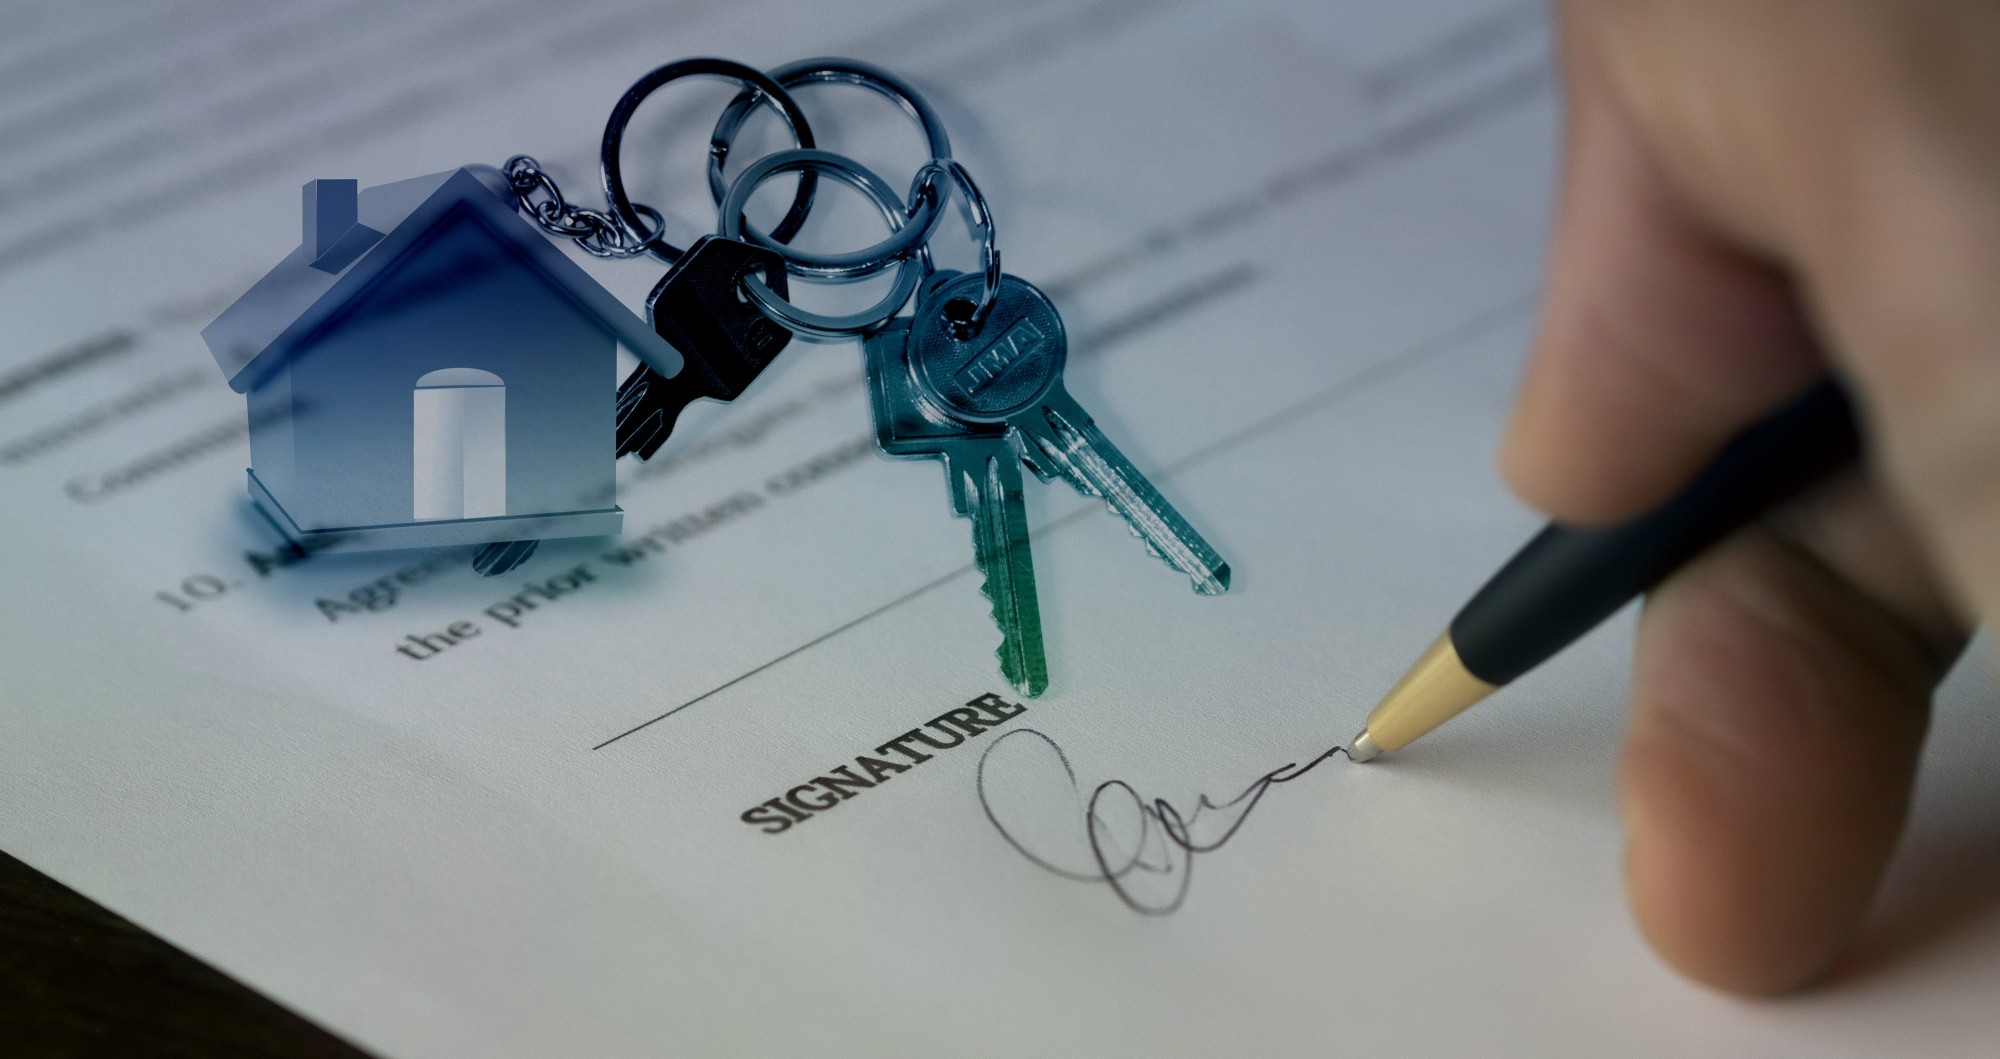 house keychain and person signing document